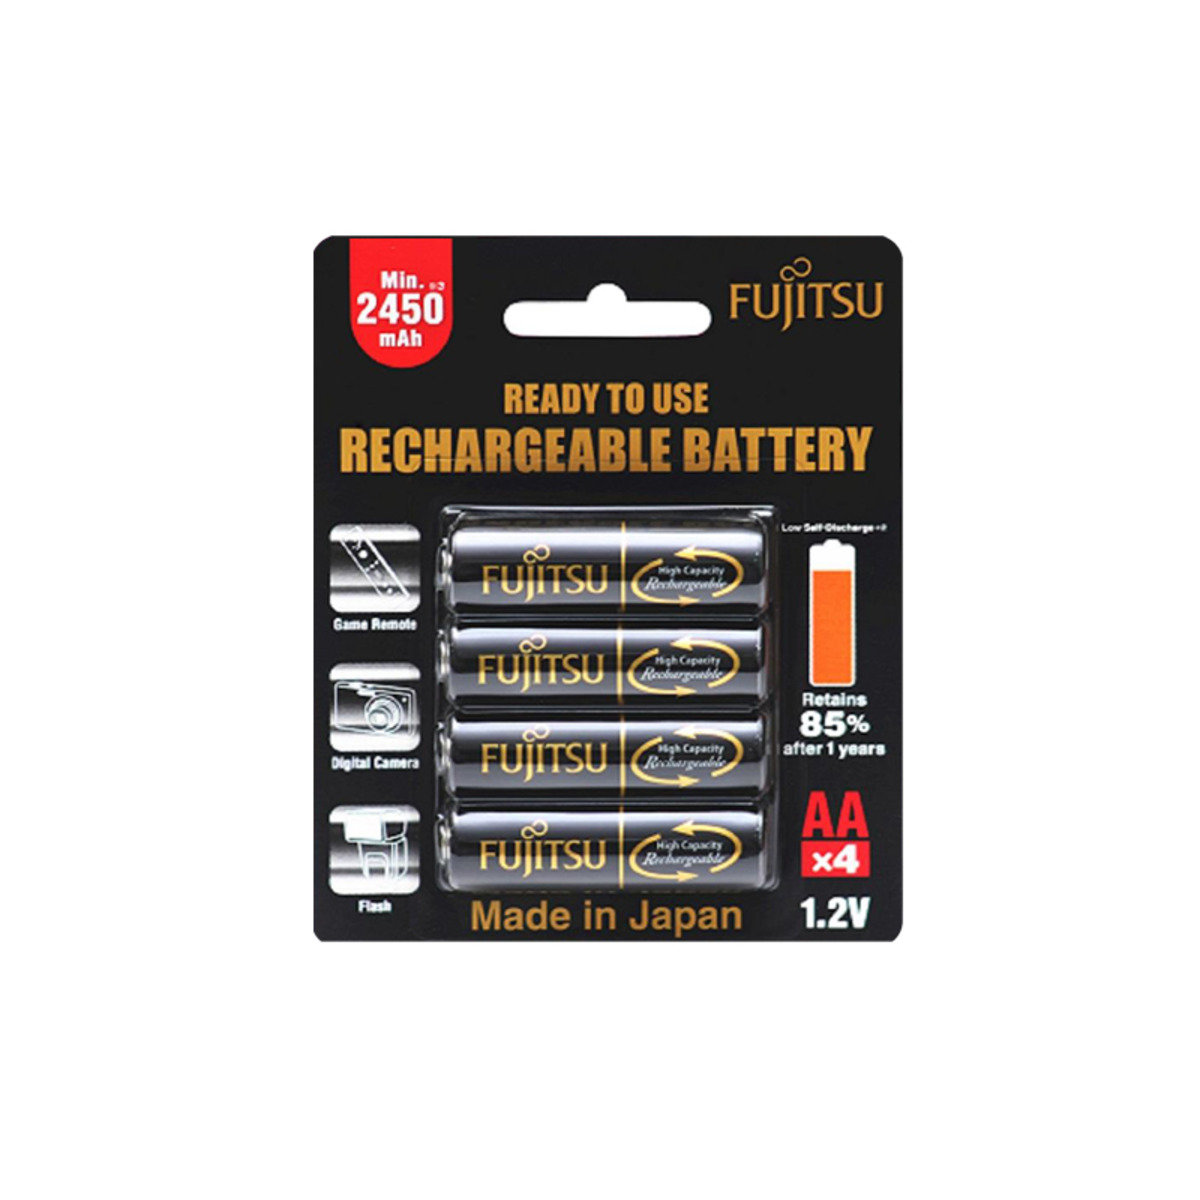 2450mAh AA x 4Pcs  (made in Japan) Ni-HM rechargeable battery